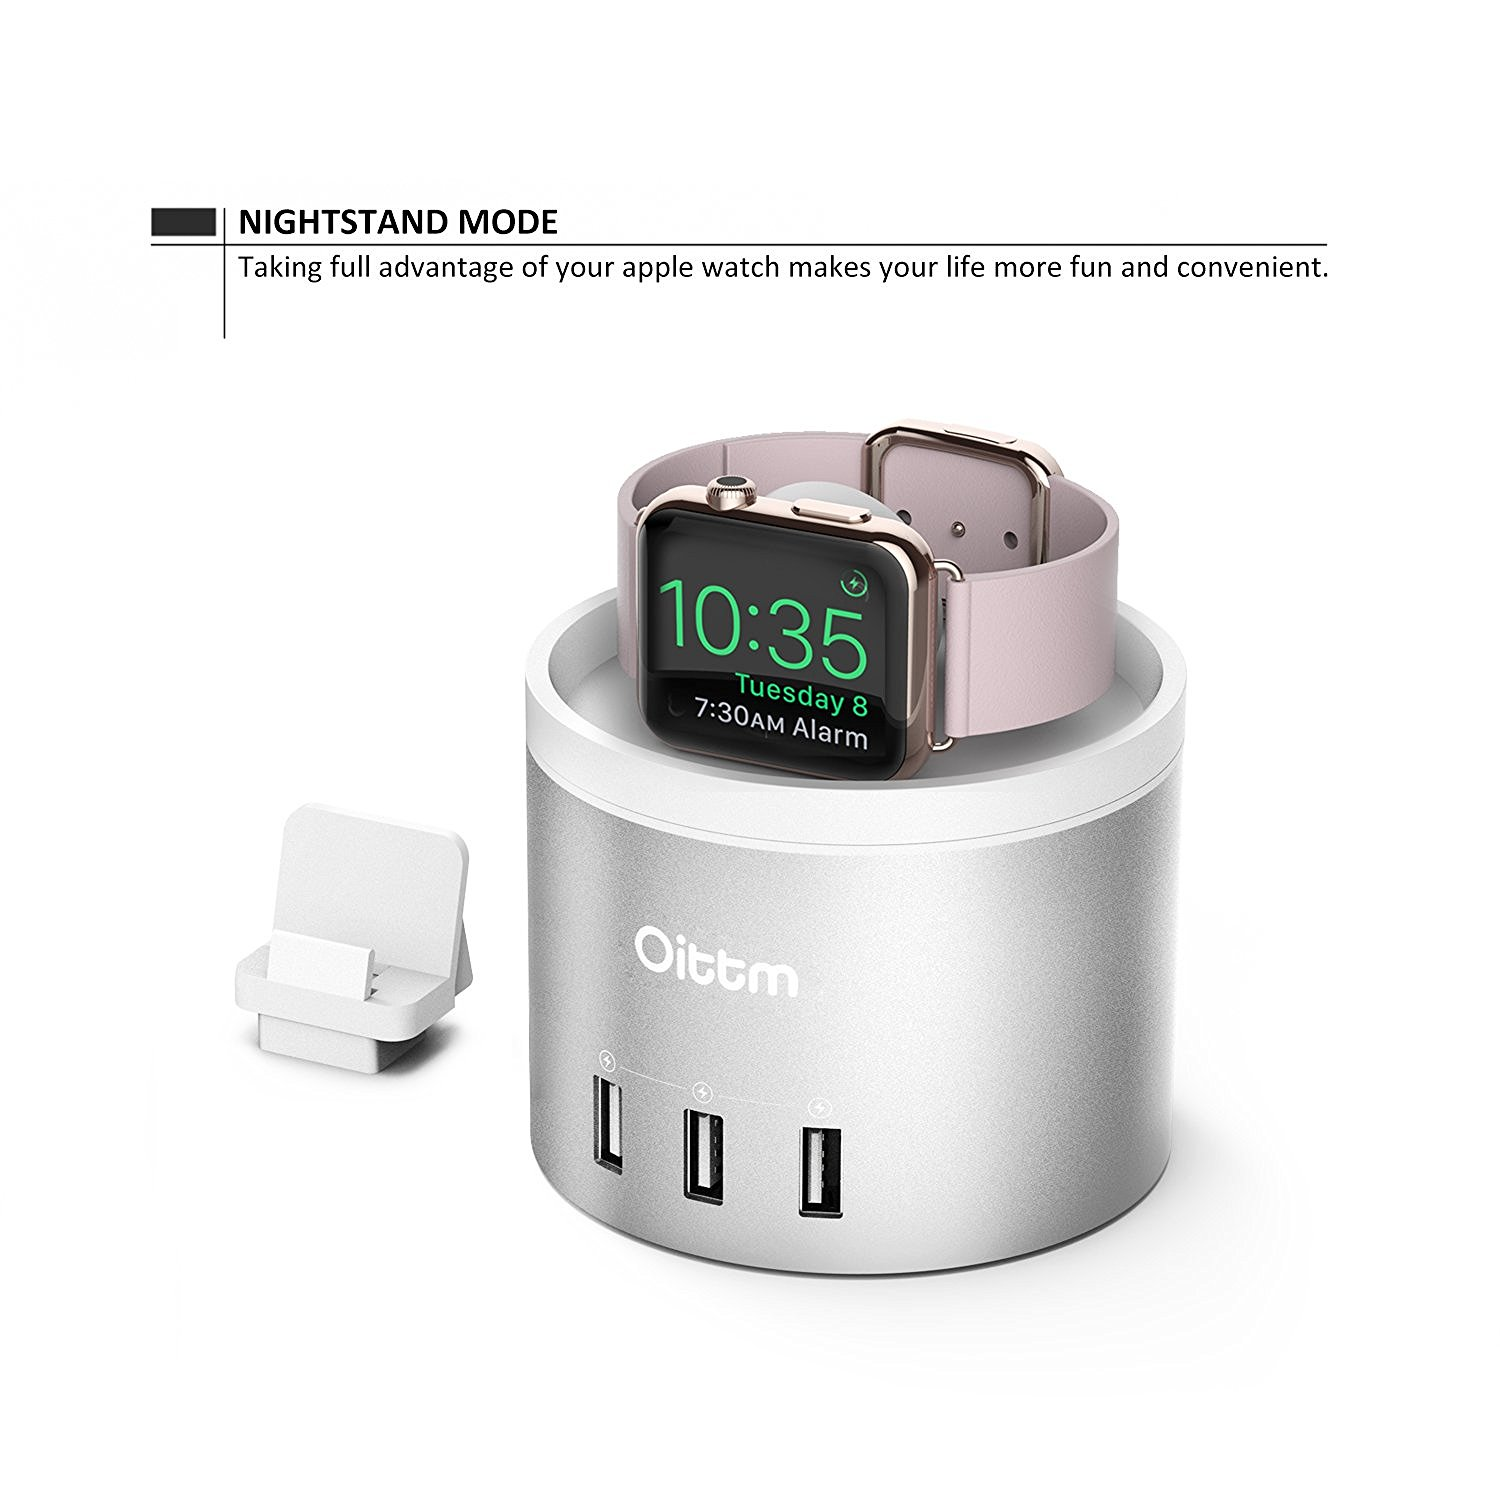 nightstand-station-apple-watch-oittm-lopoo-uk-amazon-14